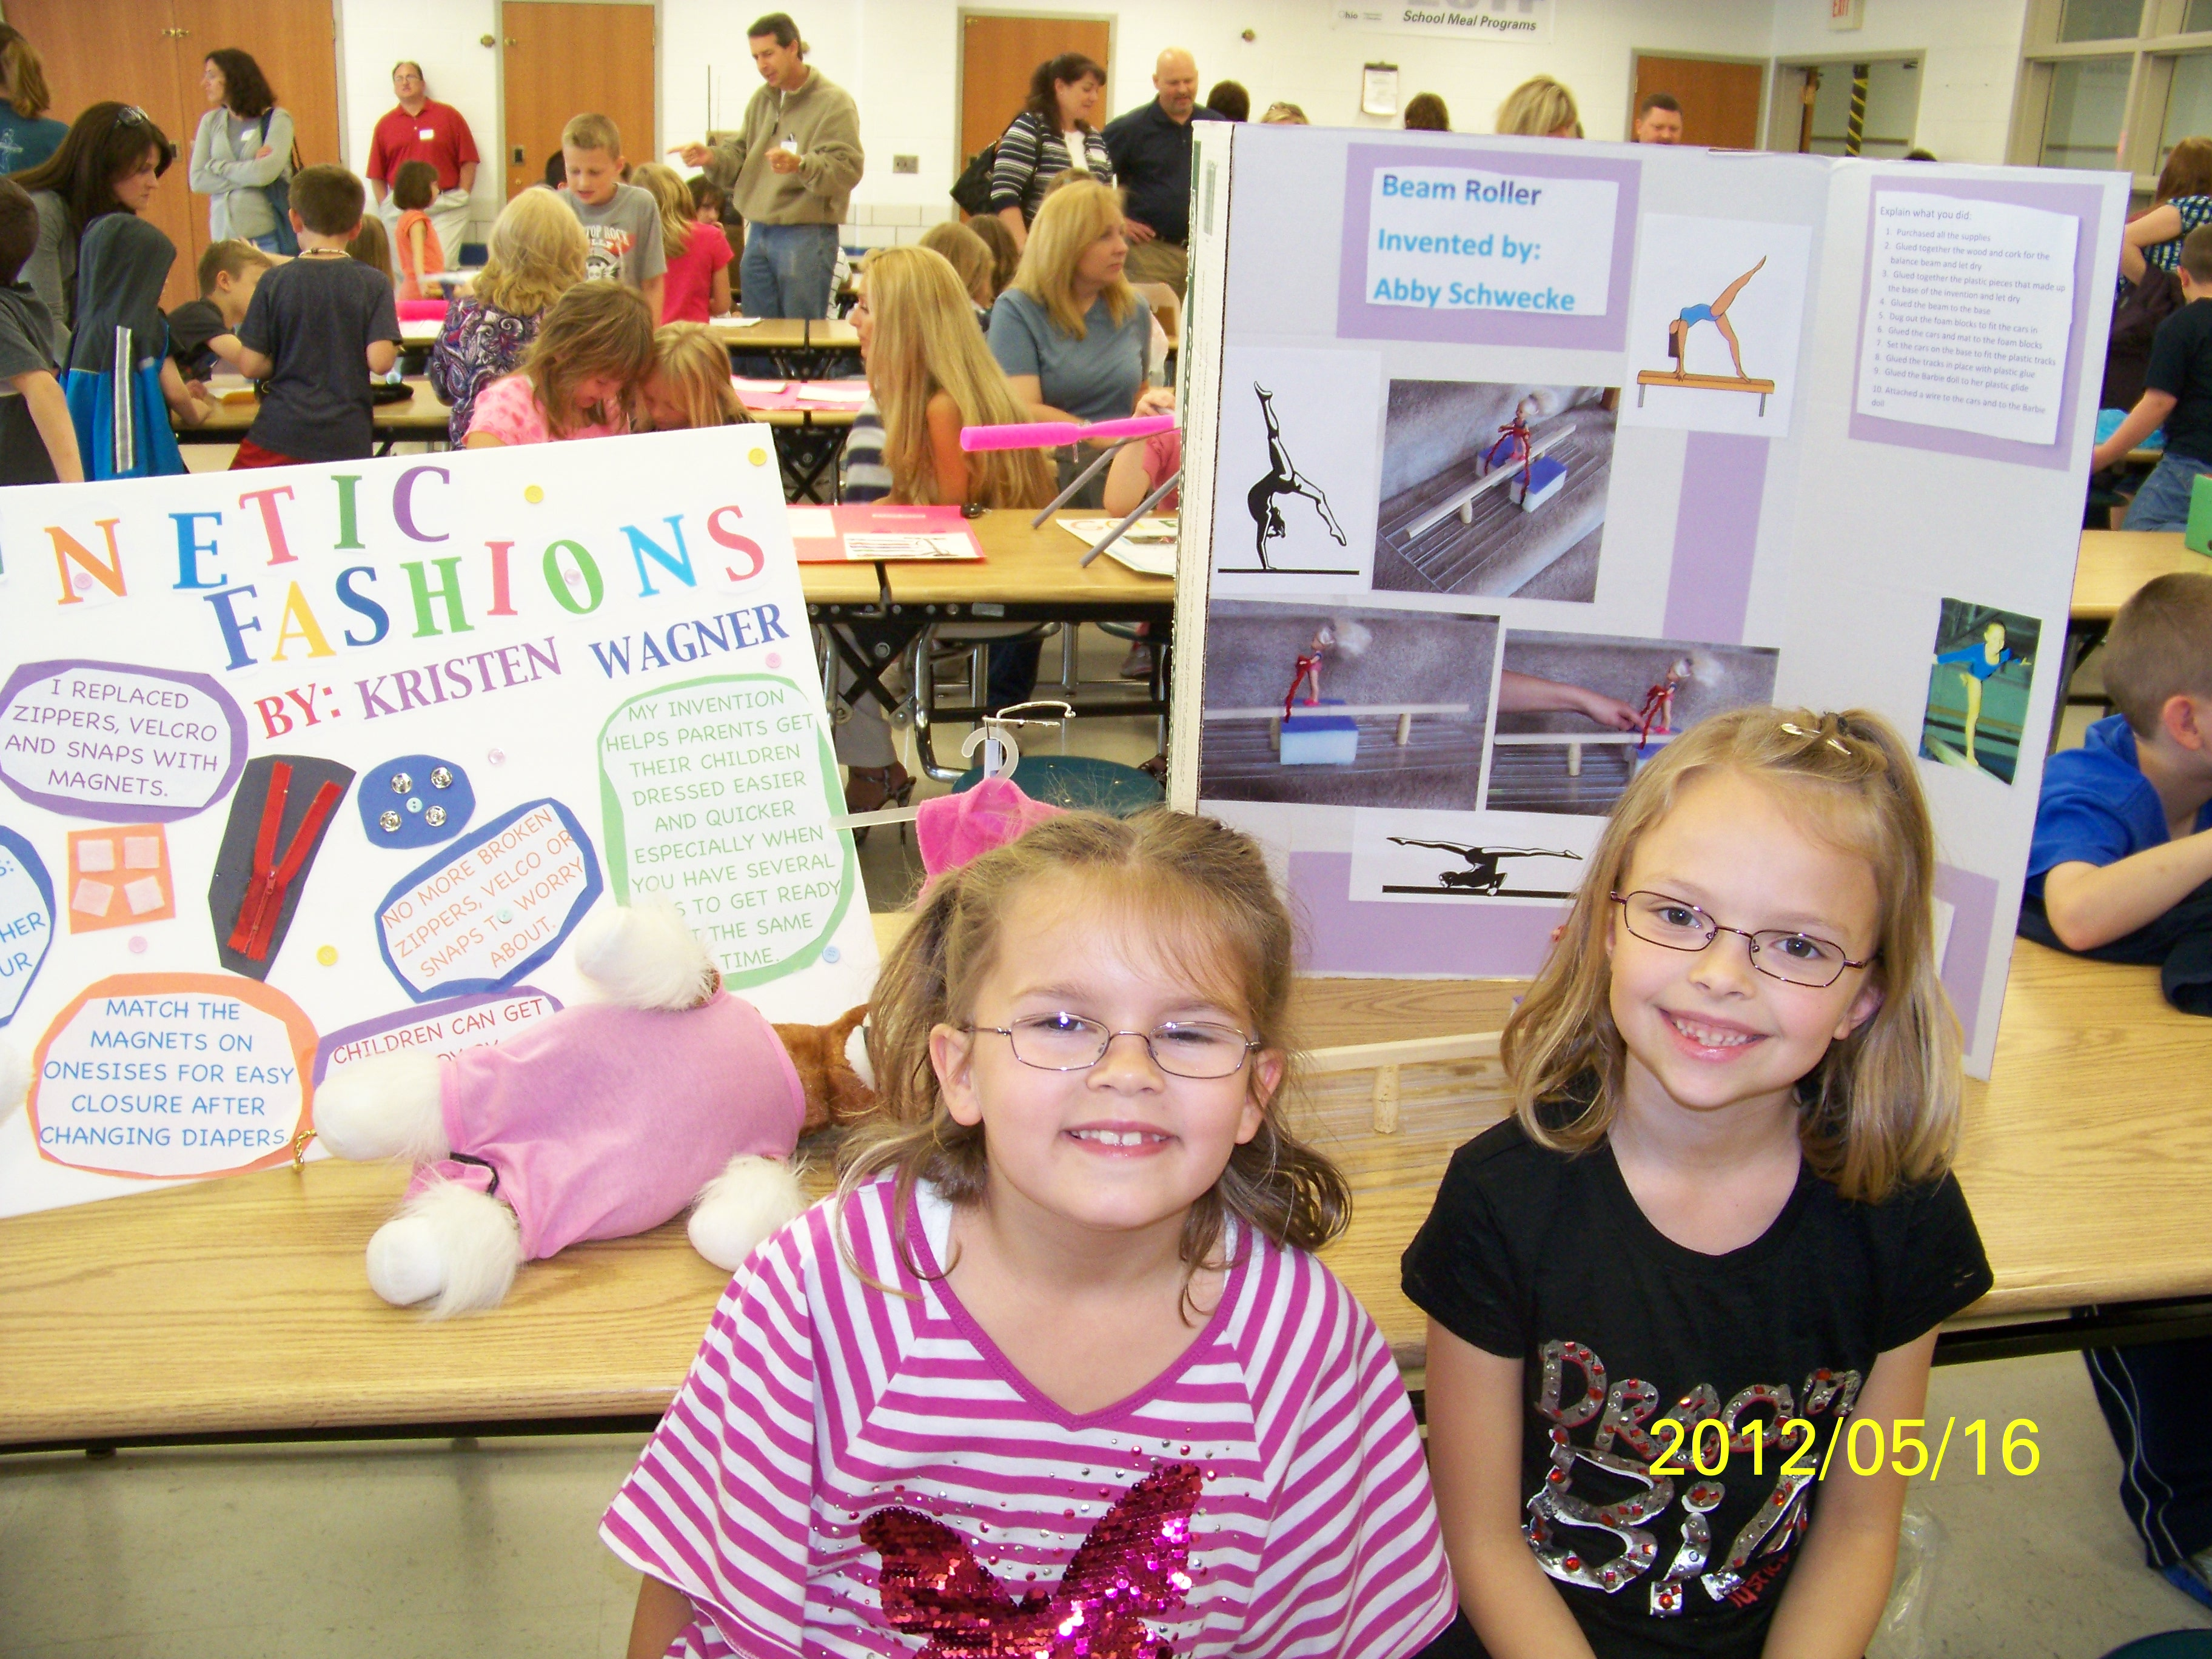 Invention Ideas For 5th Grade Students